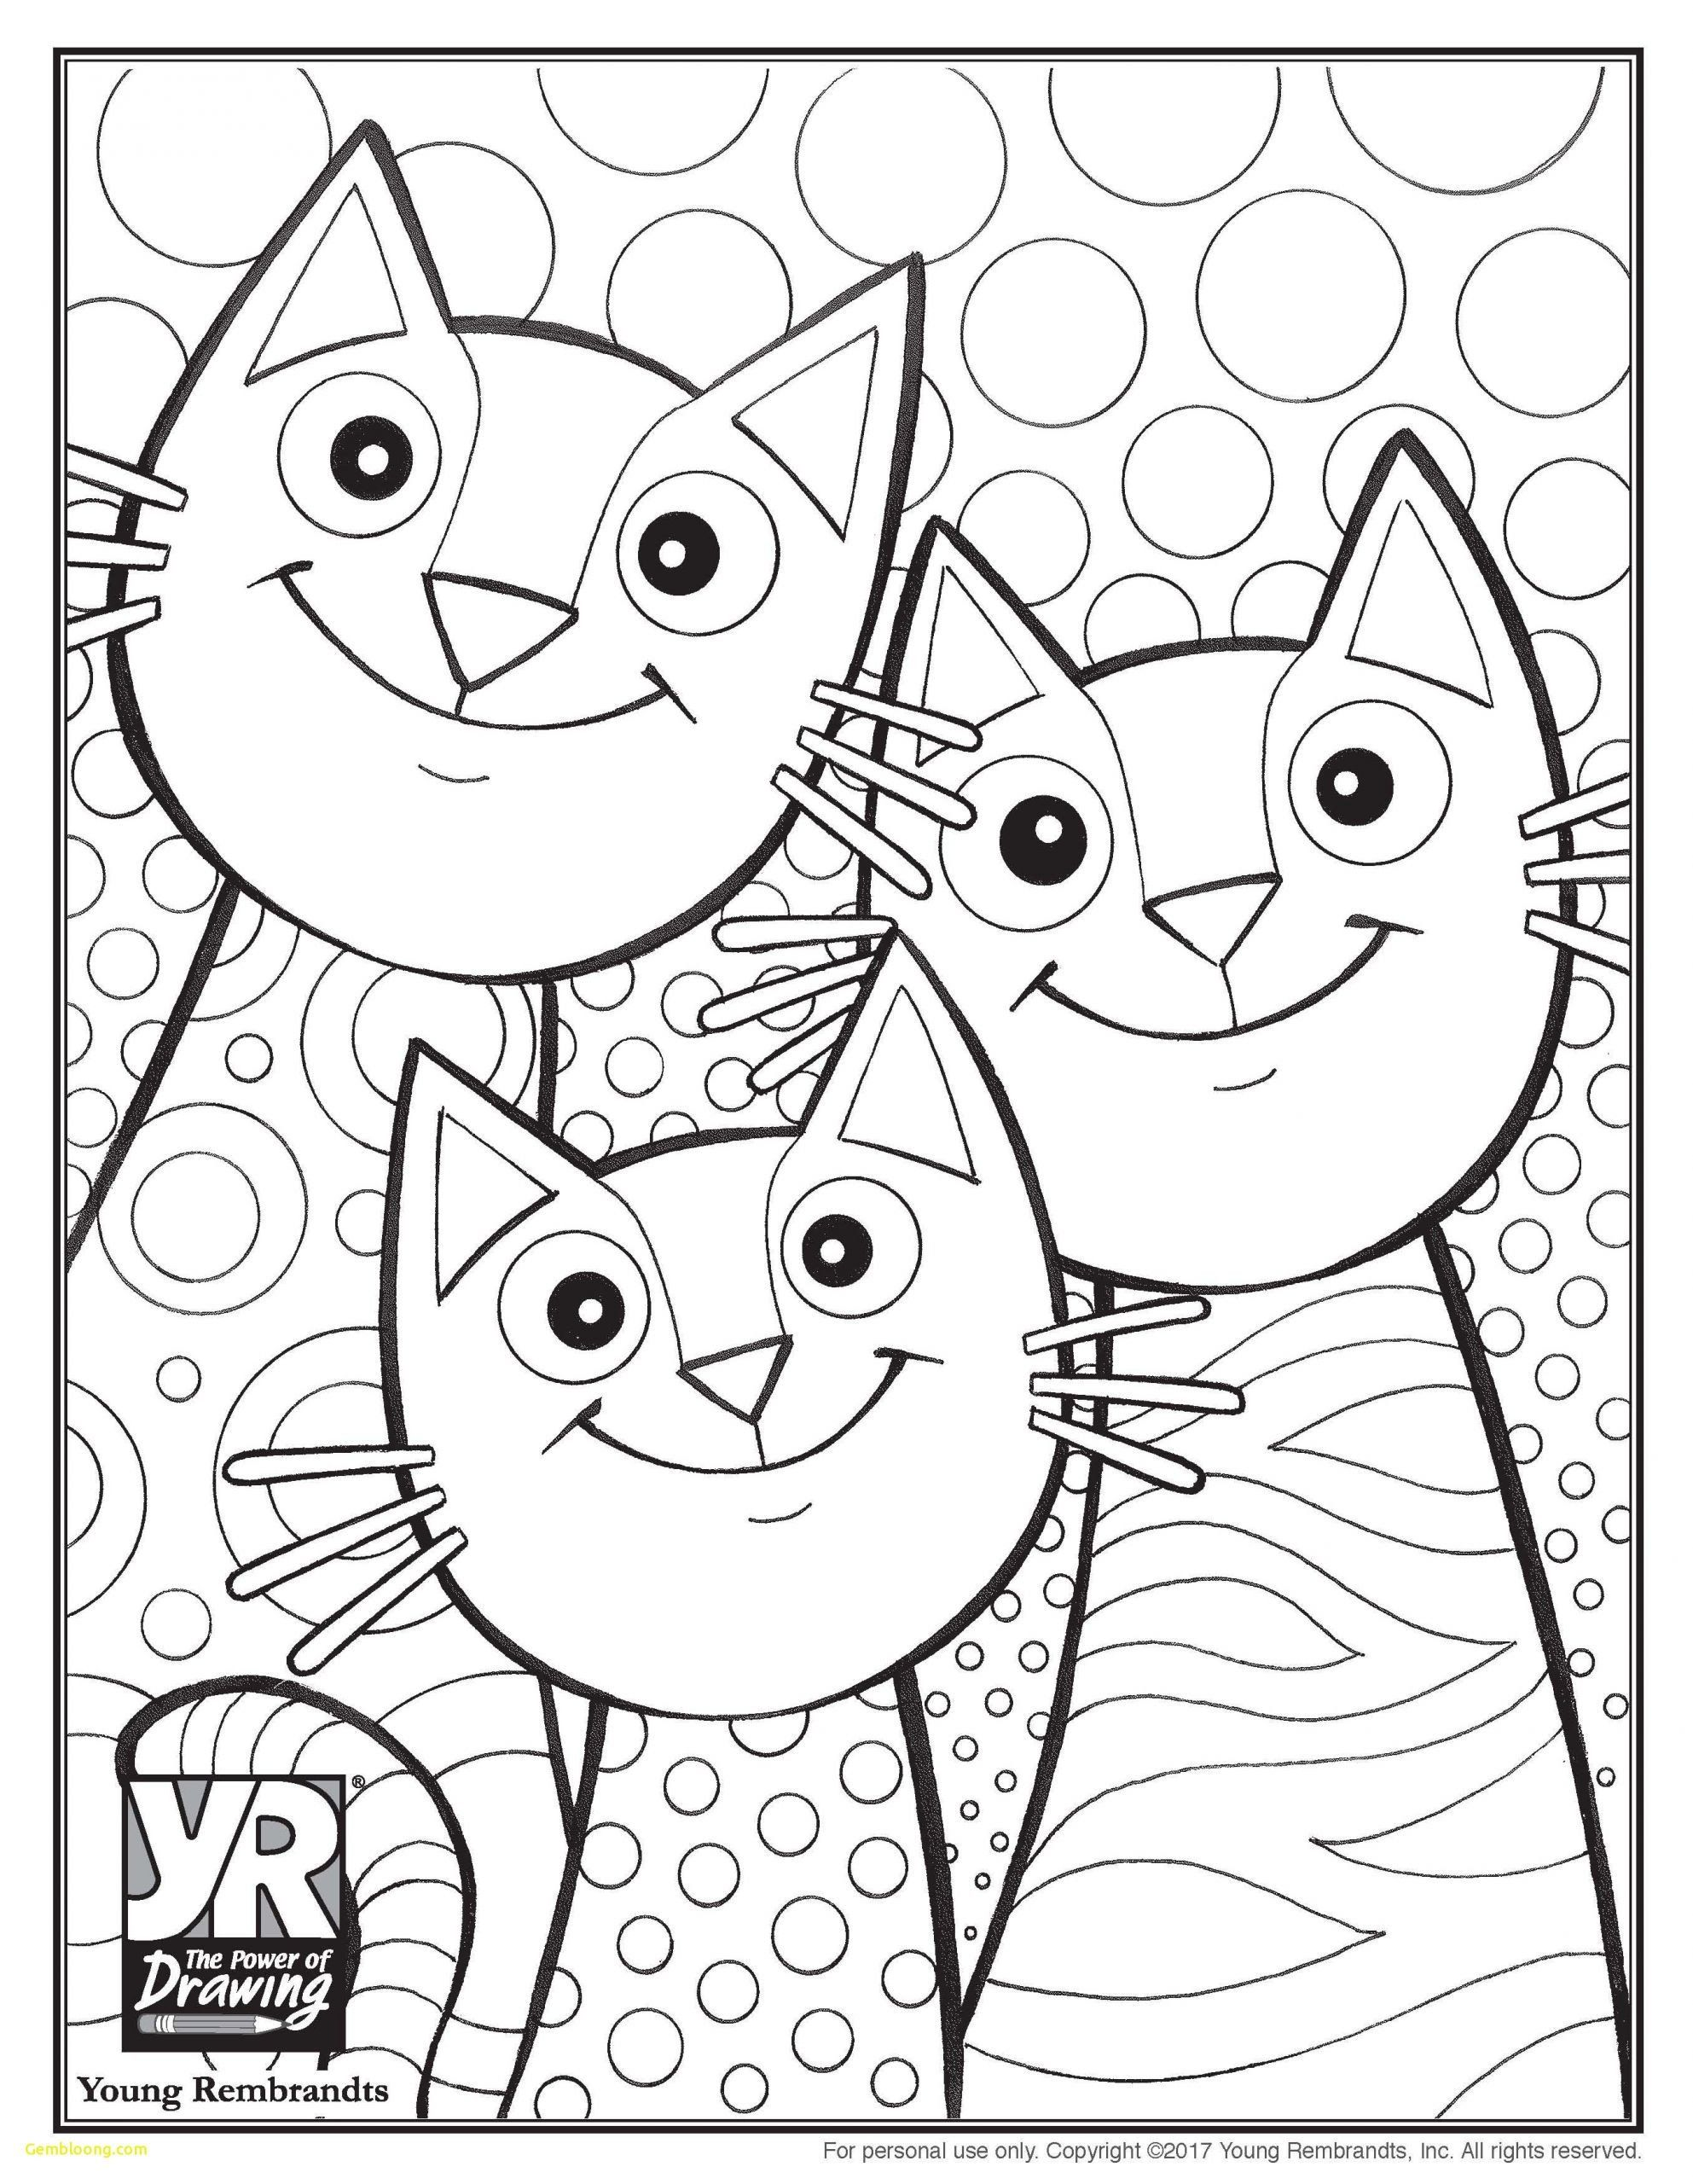 Coloring Pages Of Cute Kittens Coloring Pages Cute Kitten Coloring Pages New Cats Cat Coloring Page Dog Coloring Page Animal Coloring Pages